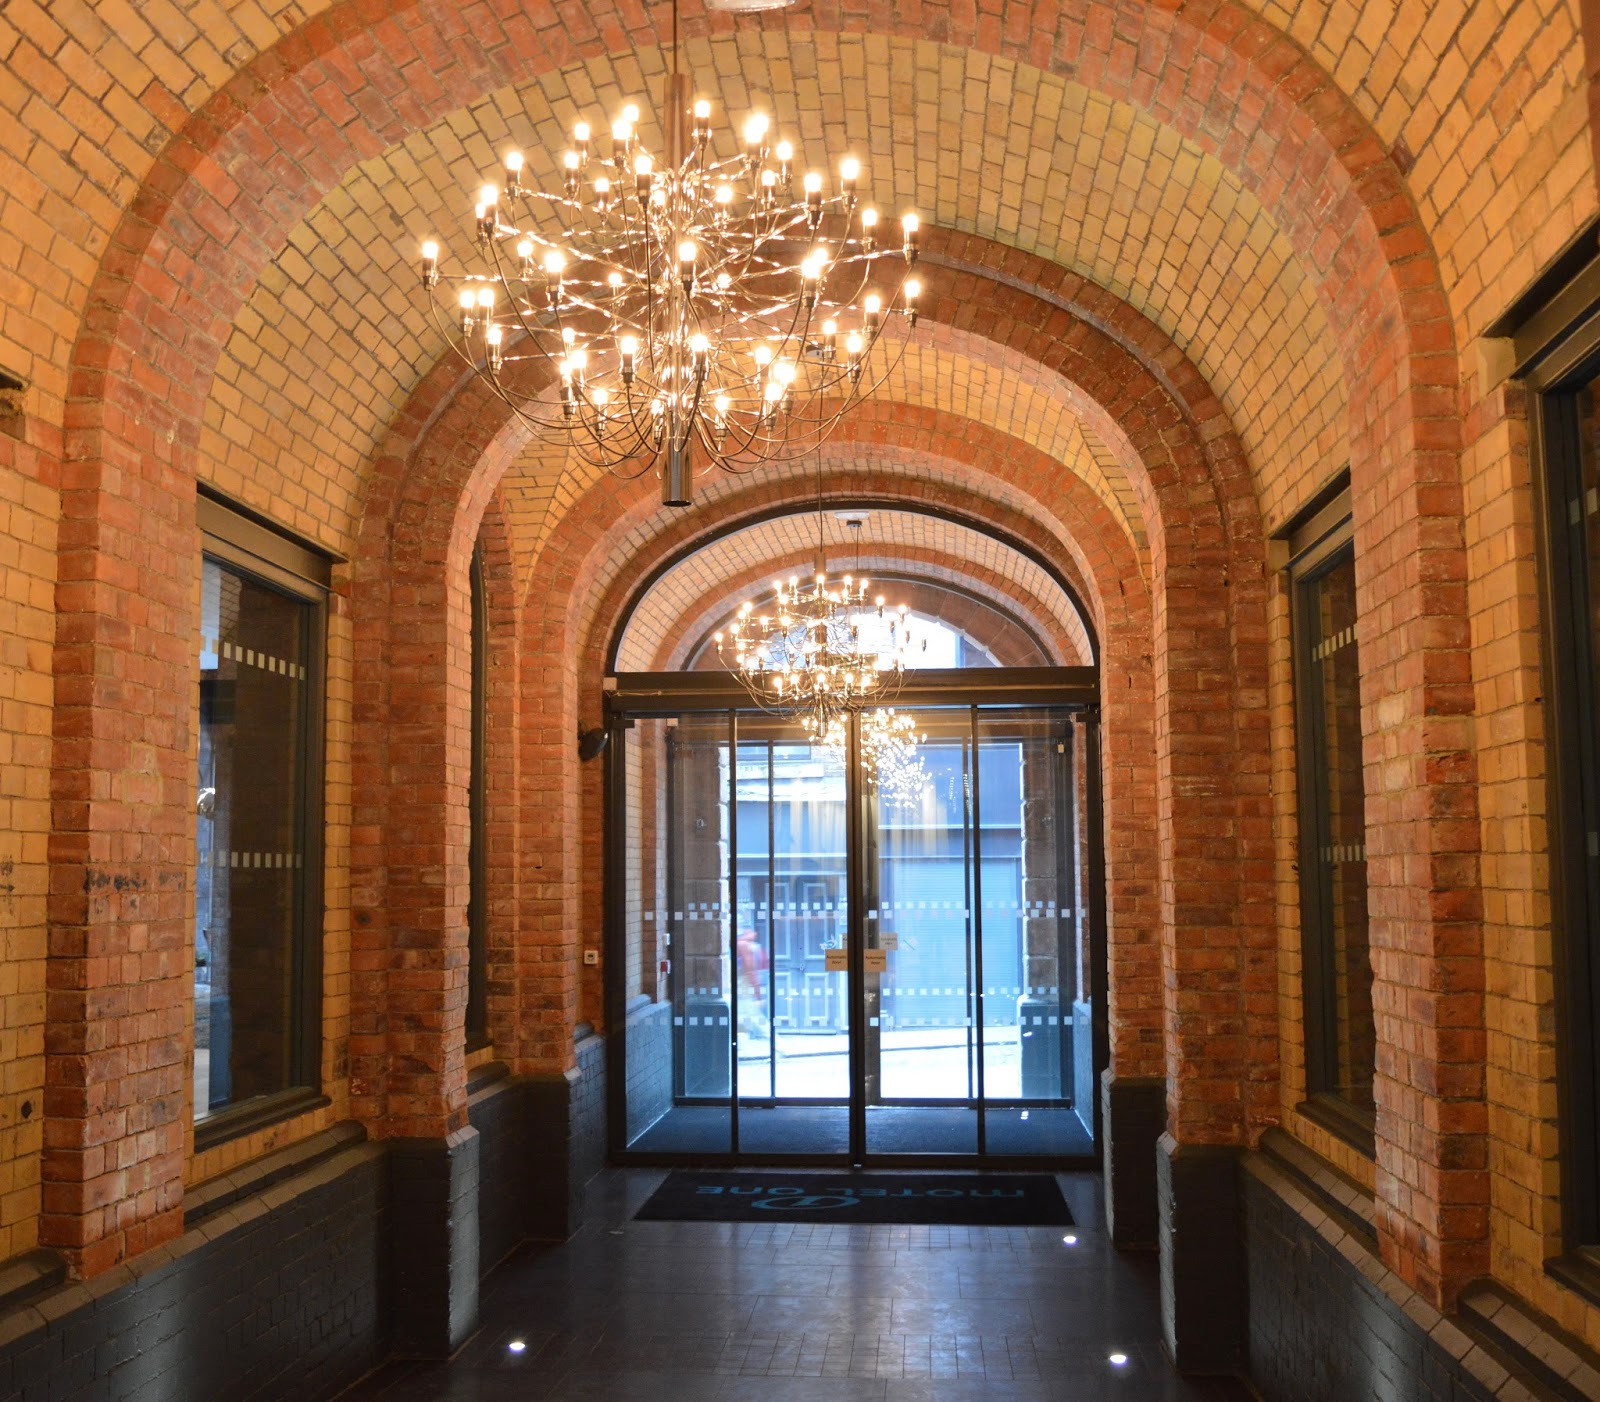 Motel One Lobby Newcastle - exposed brickwork and chandelier